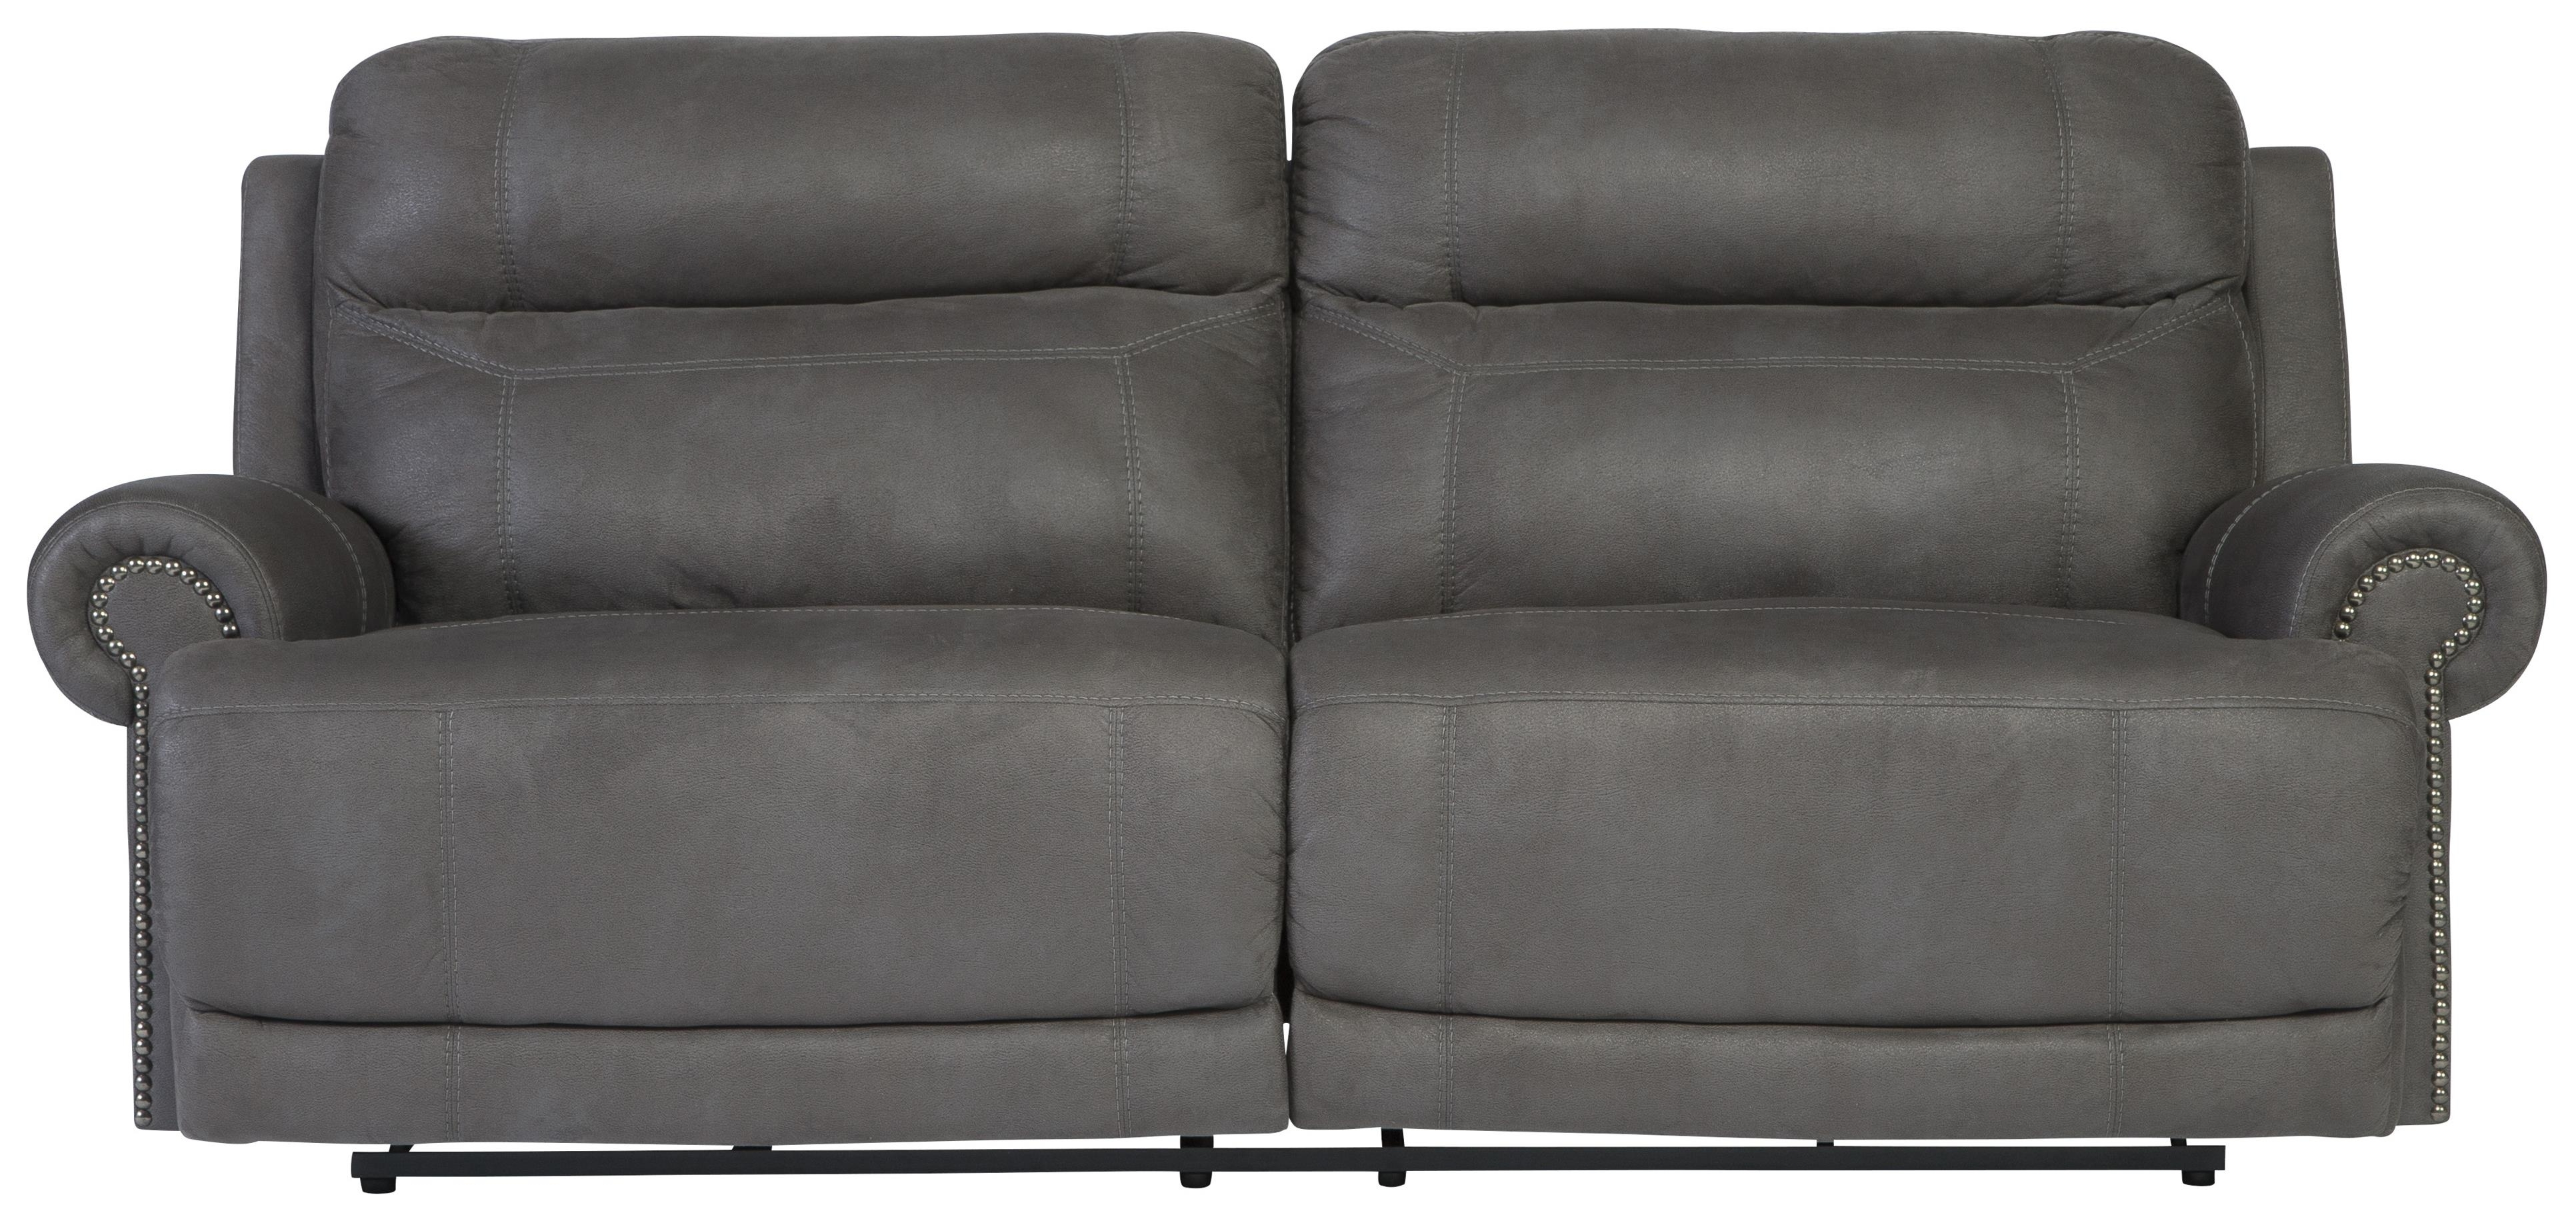 2 Seat Recliner Sofas Within Fashionable Signature Designashley Austere – Gray 2 Seat Reclining Sofa (View 3 of 15)